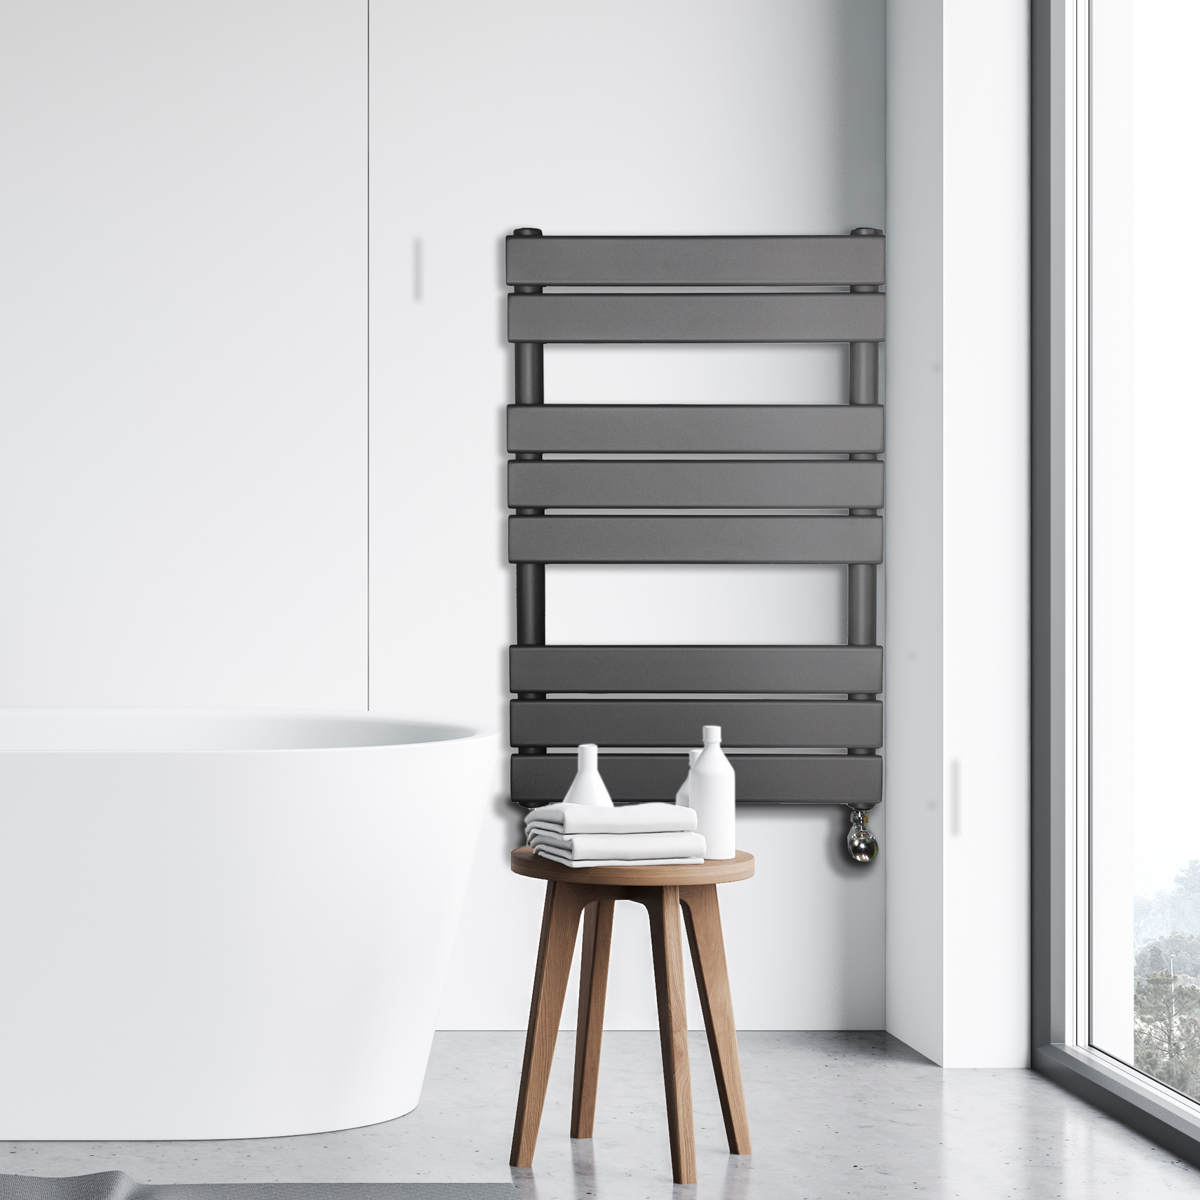 Adige Designer Towel Radiator Grey Medium RAD-AF-FR01004G